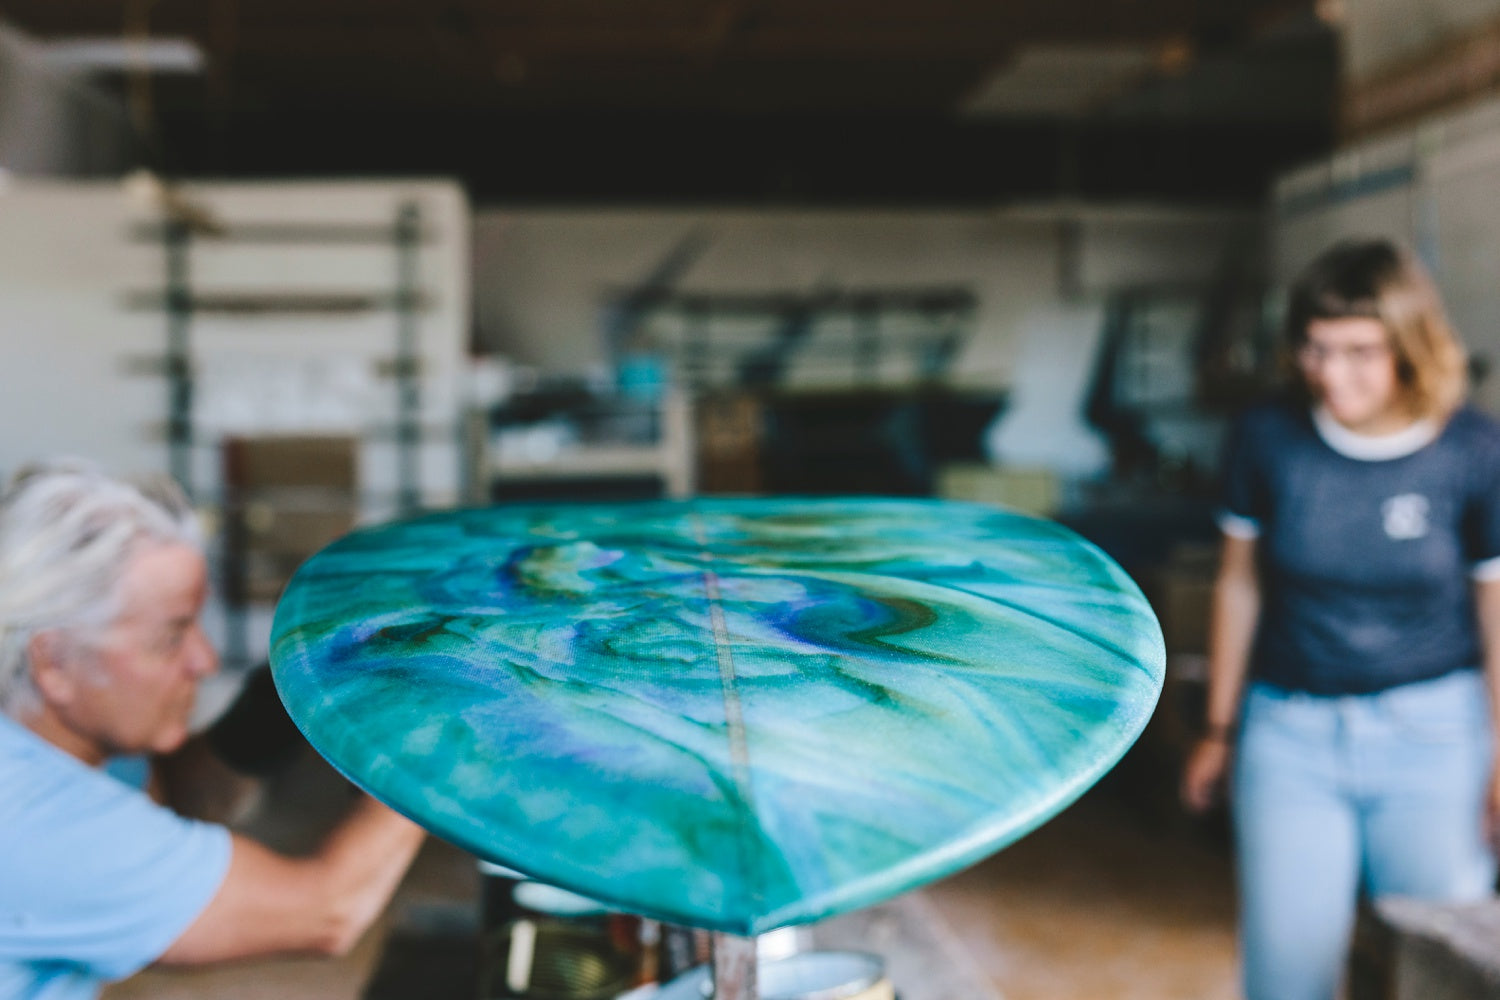 detail image of colour resin design on surfboard